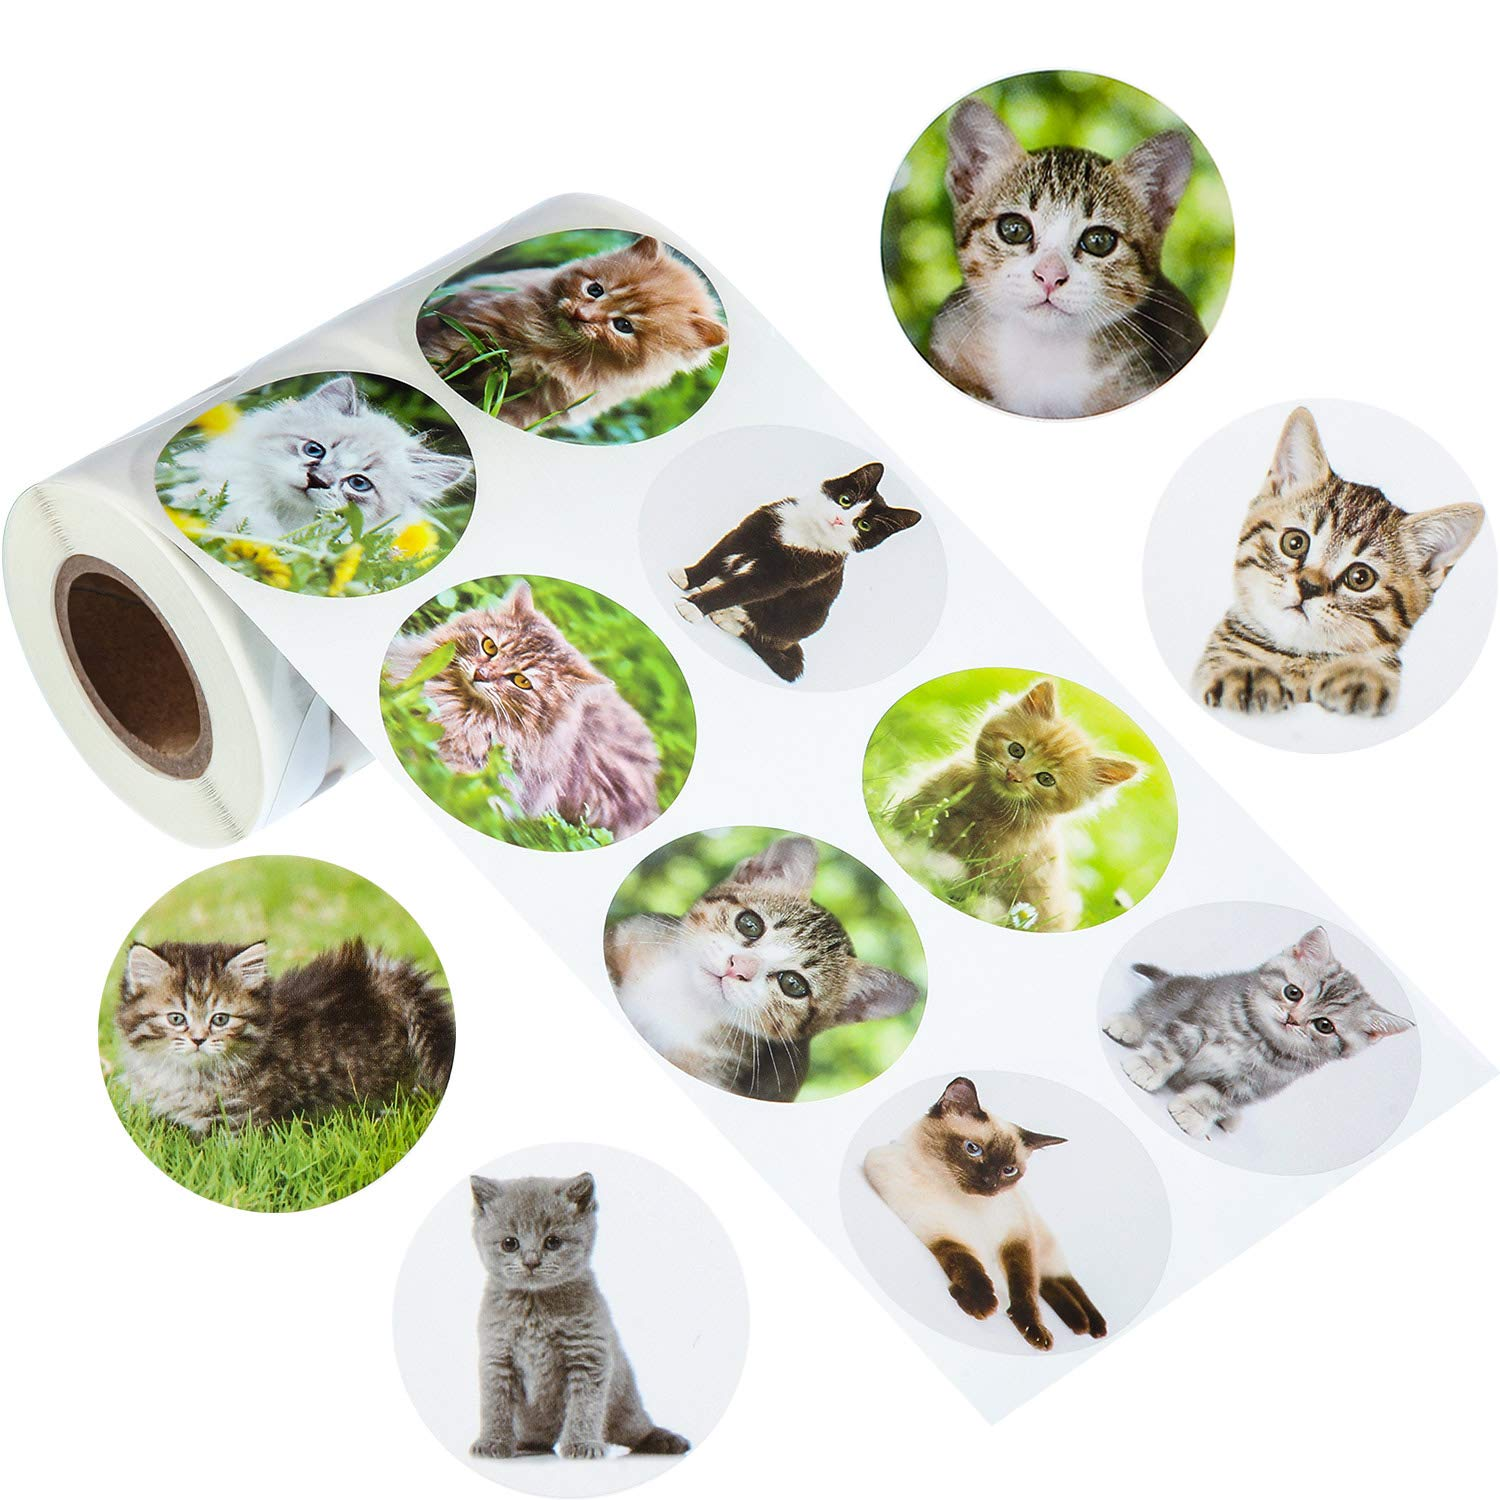 Personalized Arts and Crafts meekoo 500 Pieces Cat Photo Stickers Cat Roll Stickers Cat Paper Stickers for Party Favors Novelty Toys Creative Scrapbooks Game Prizes Wall Decals 12 Styles